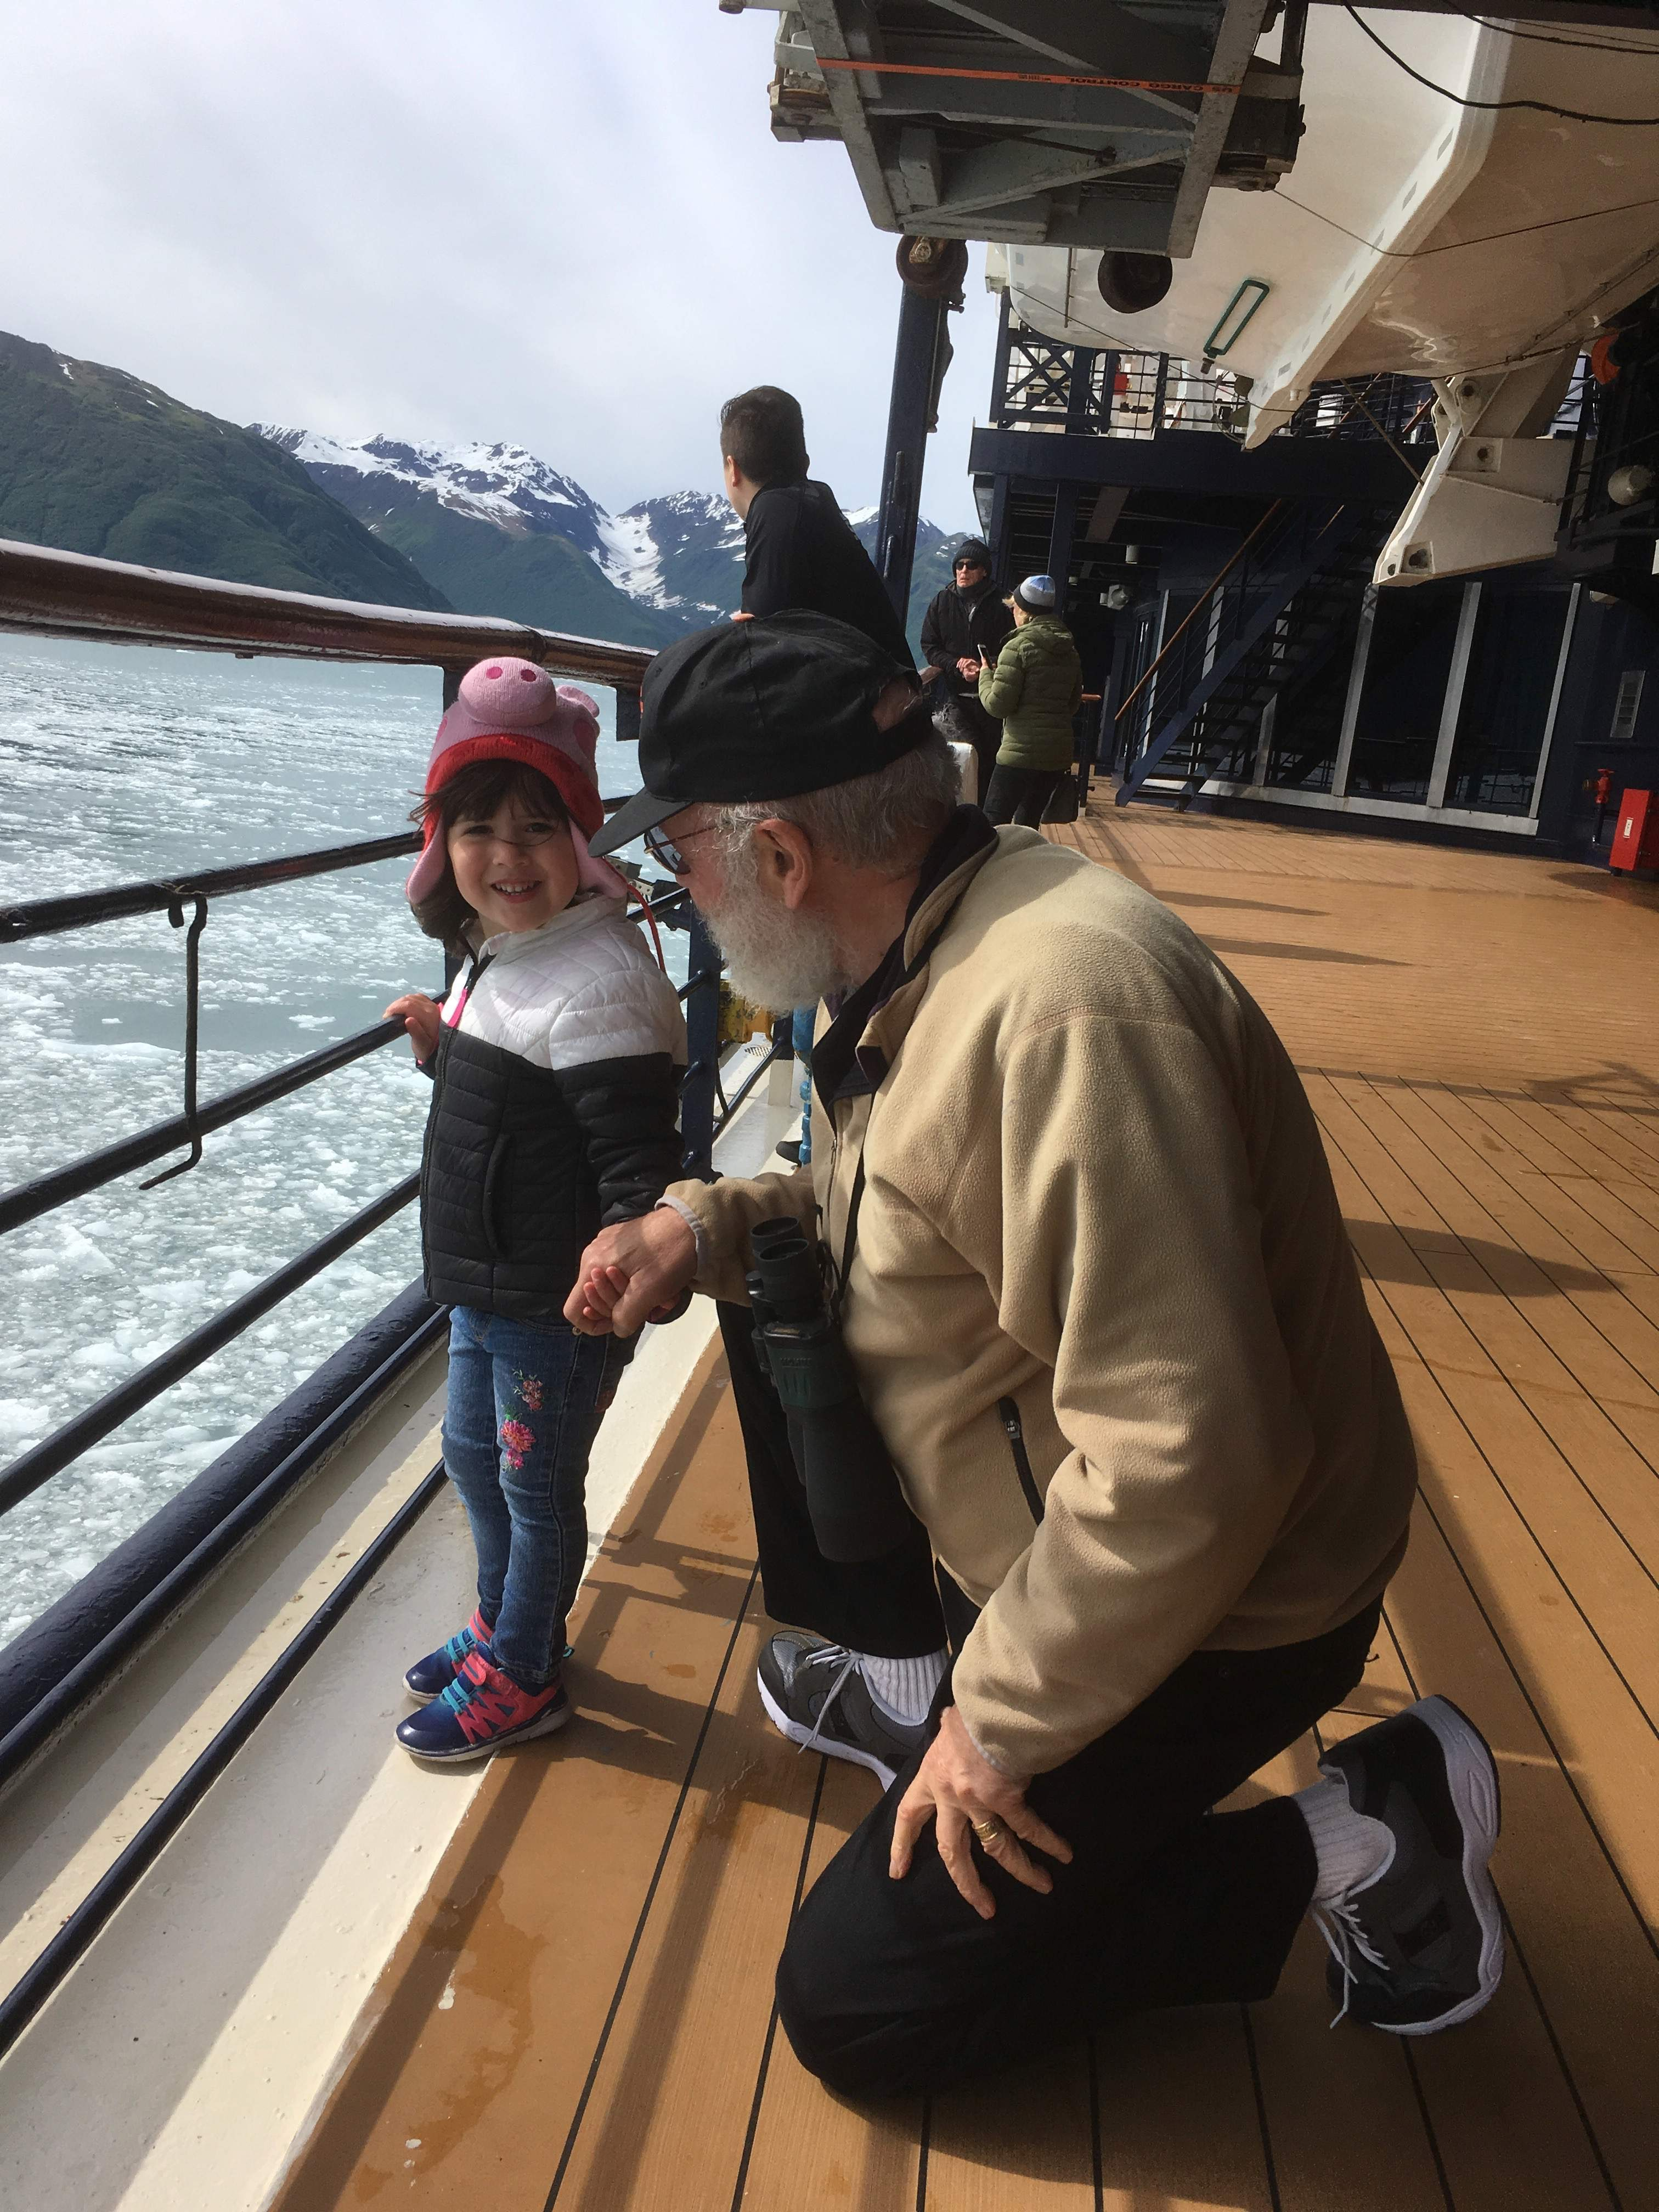 Alaskan Adventure - Family, Food, and Exploring